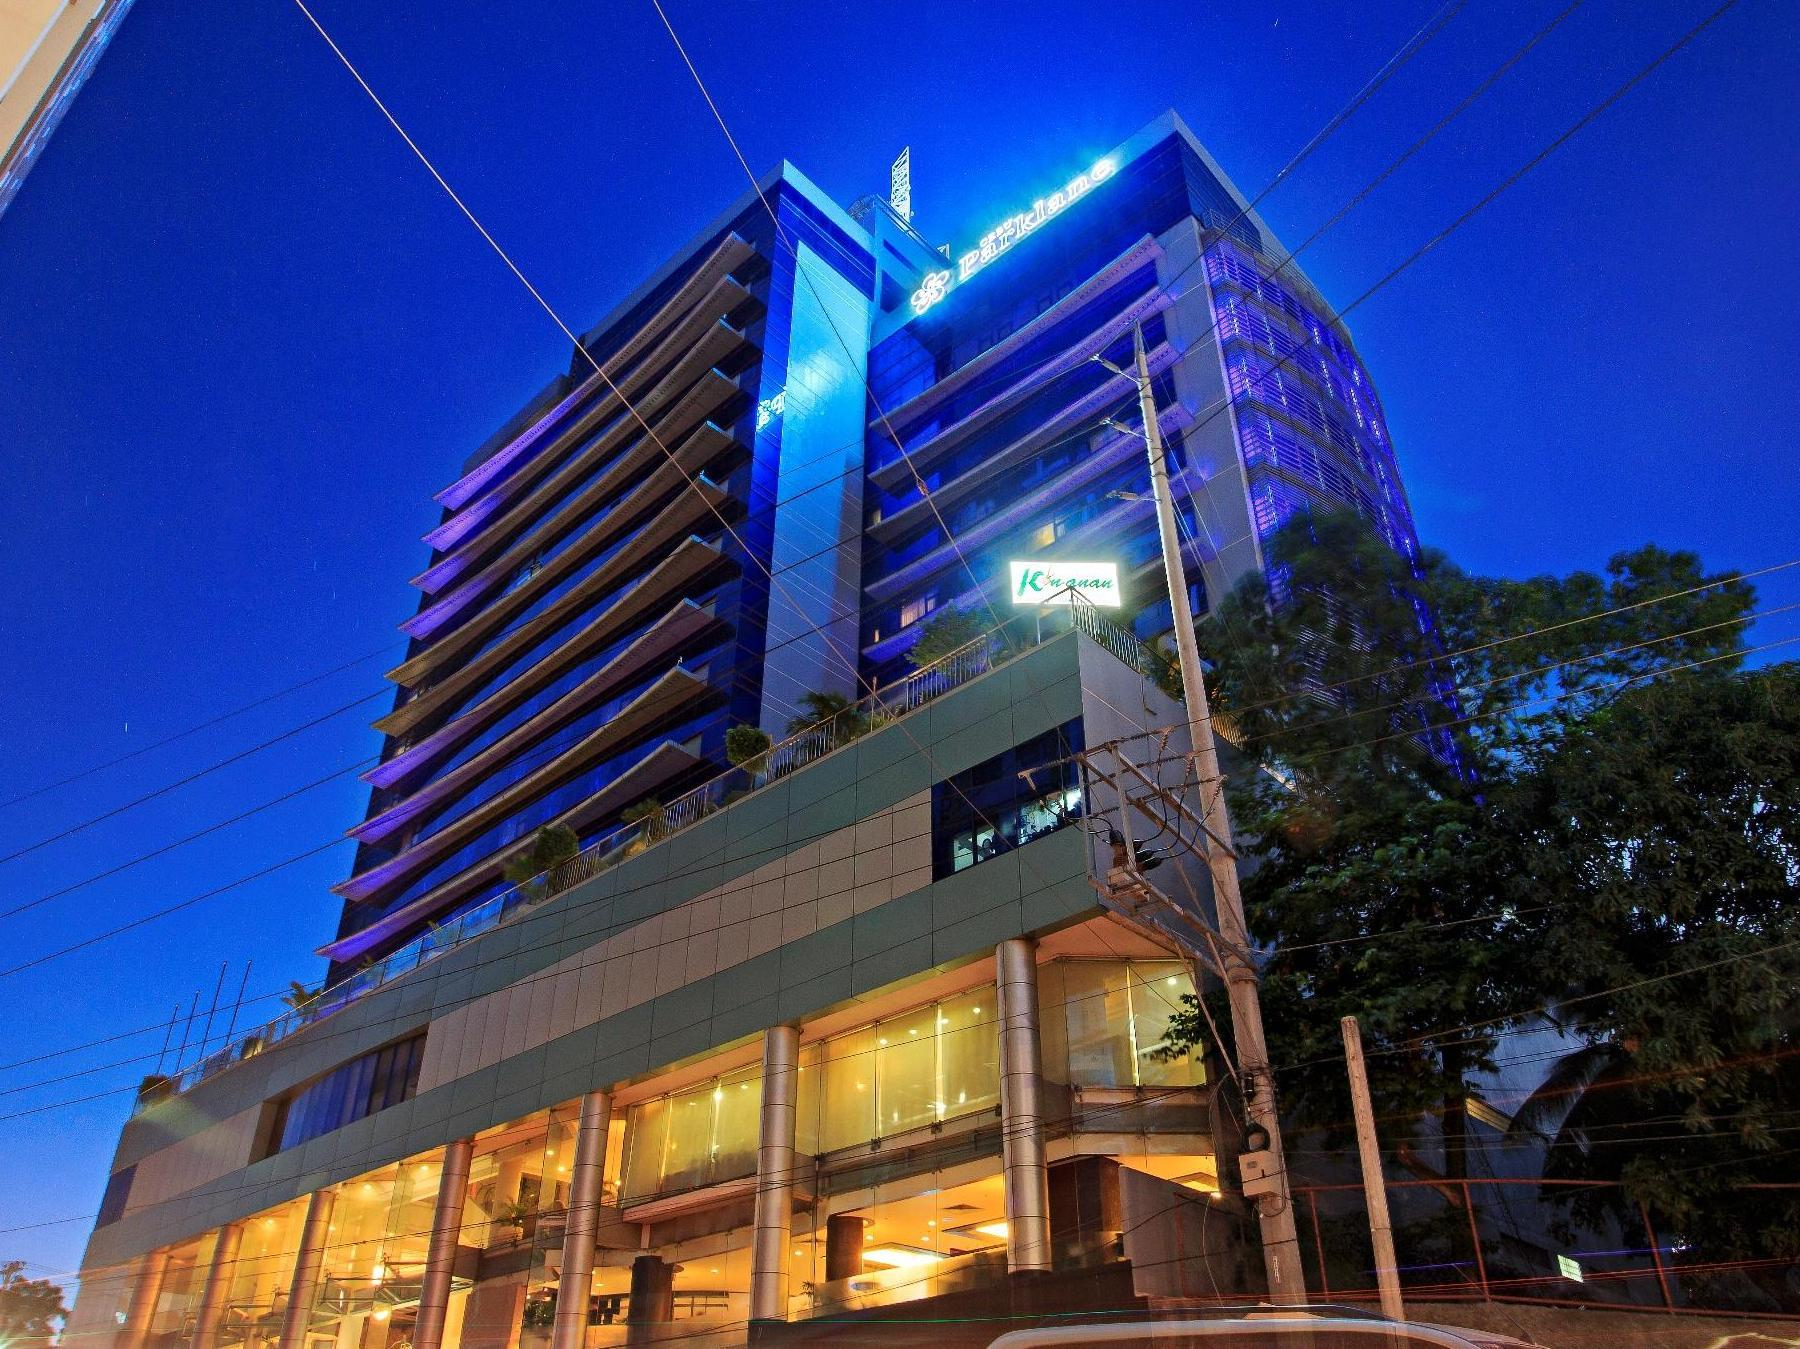 Cebu Parklane International Hotel Cebu-Stadt - Hotel Aussenansicht